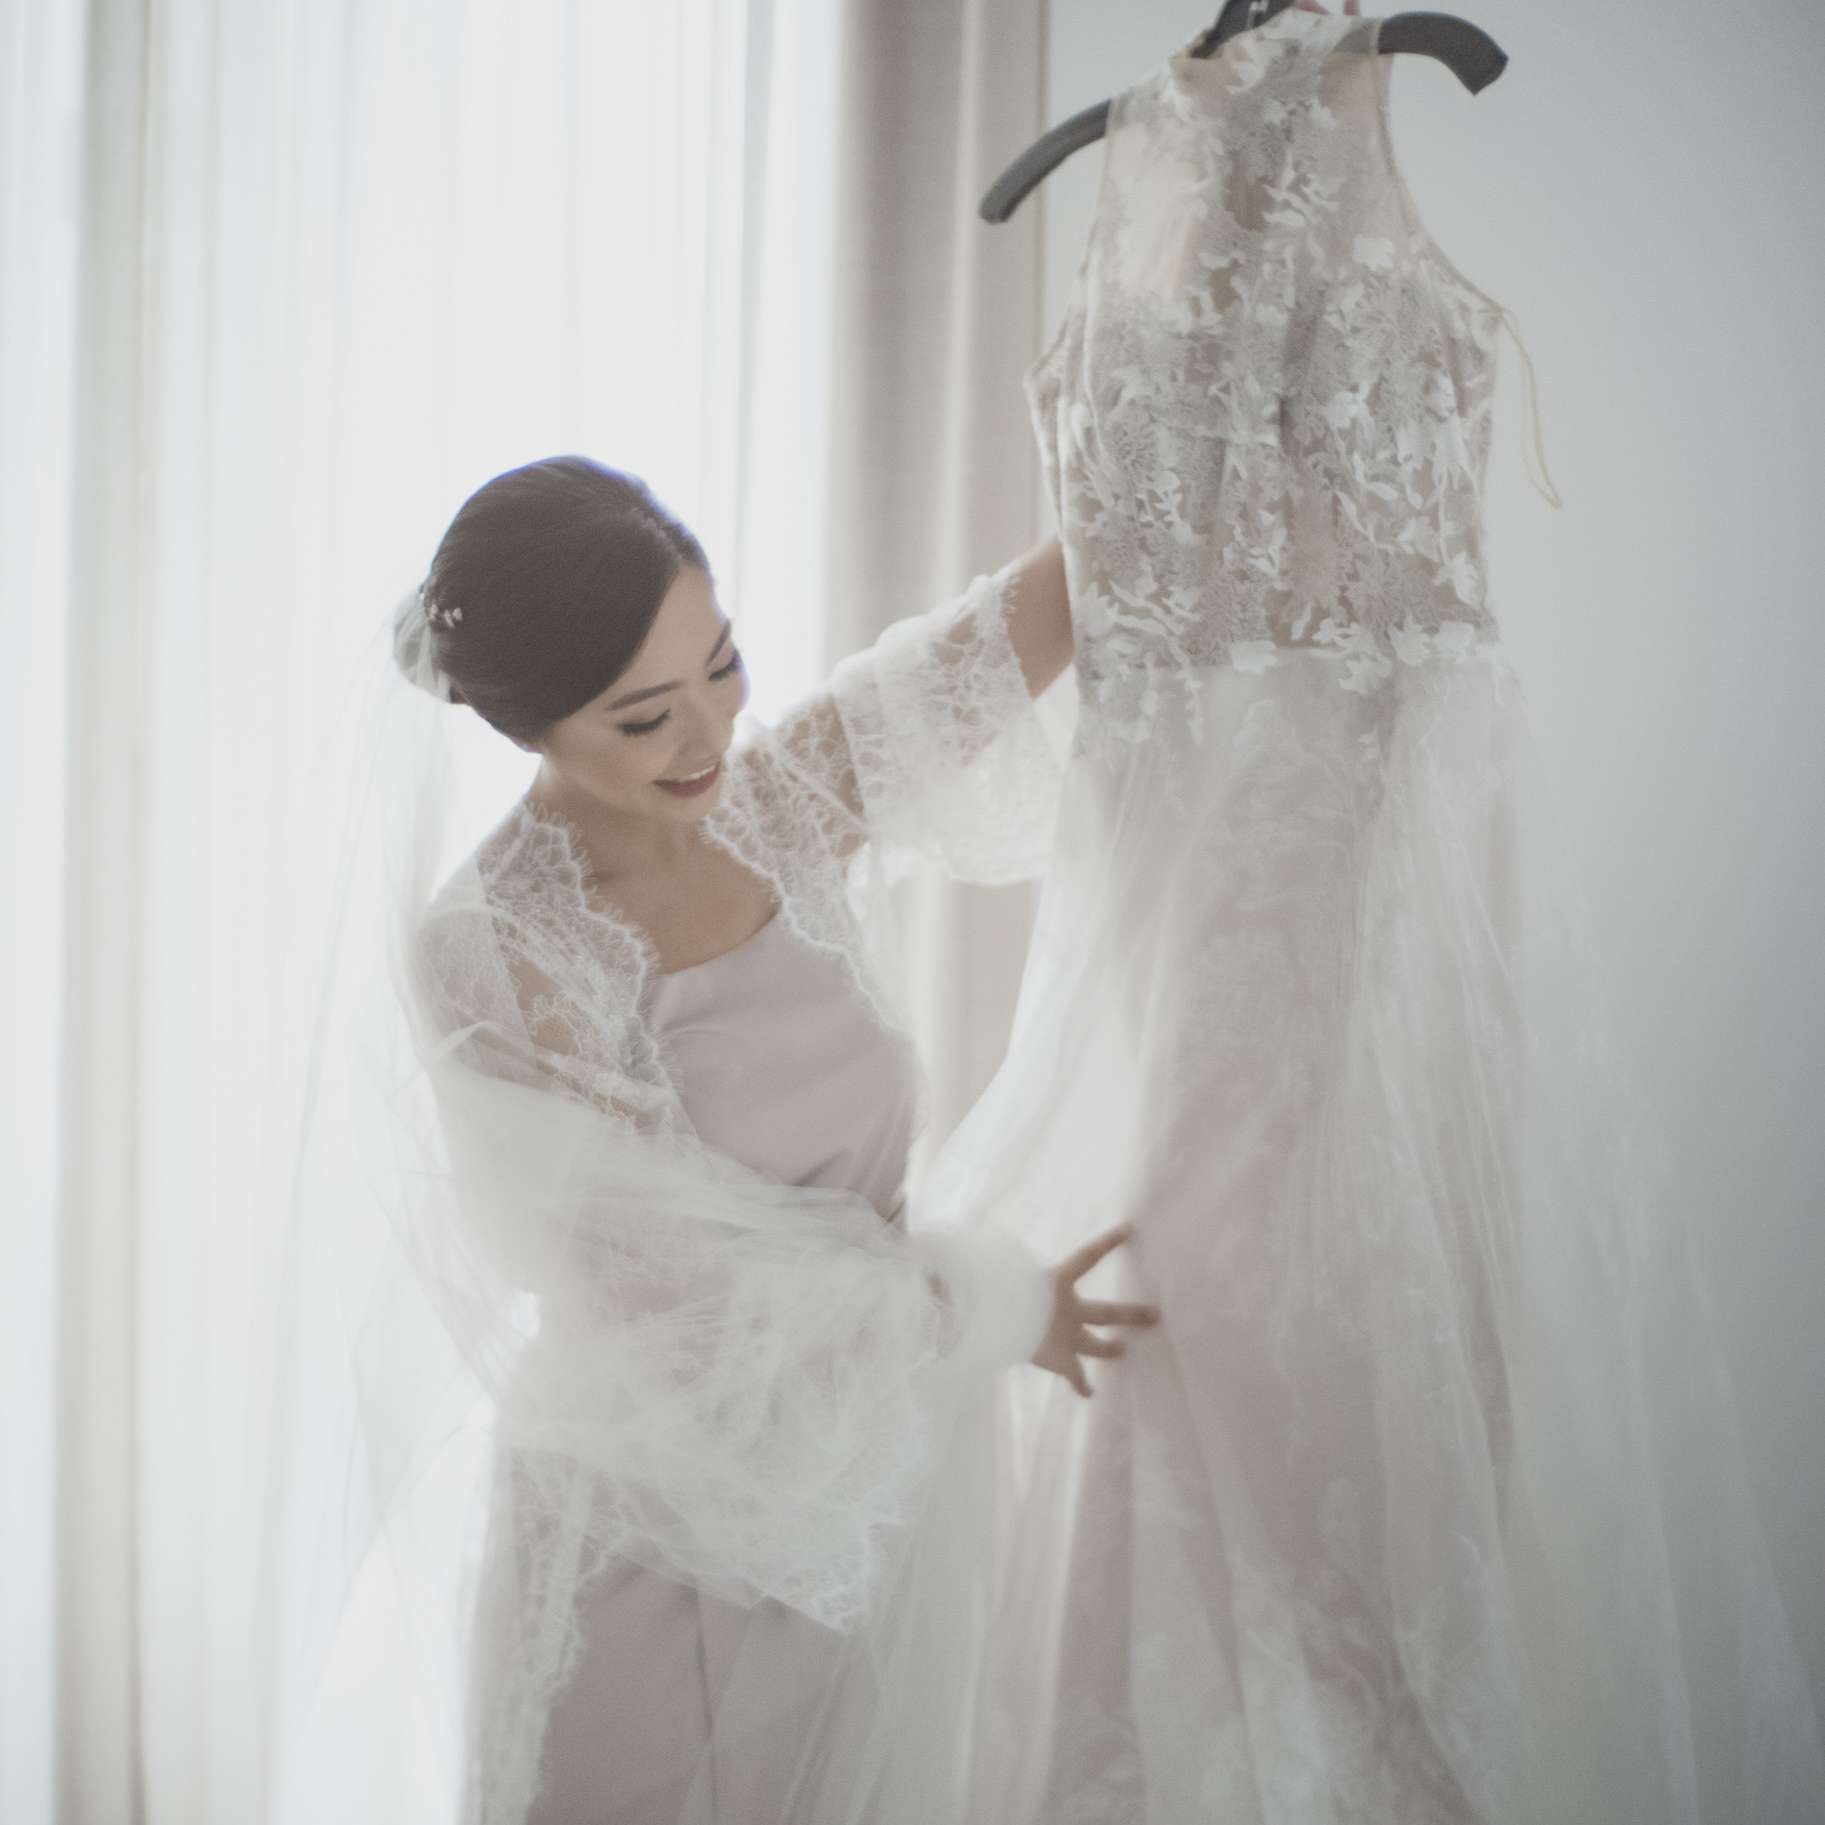 How To Choose Your Dream Wedding Dress 70 Things To Know,Outdoor Wedding Backyard Wedding Mother Of The Groom Dresses